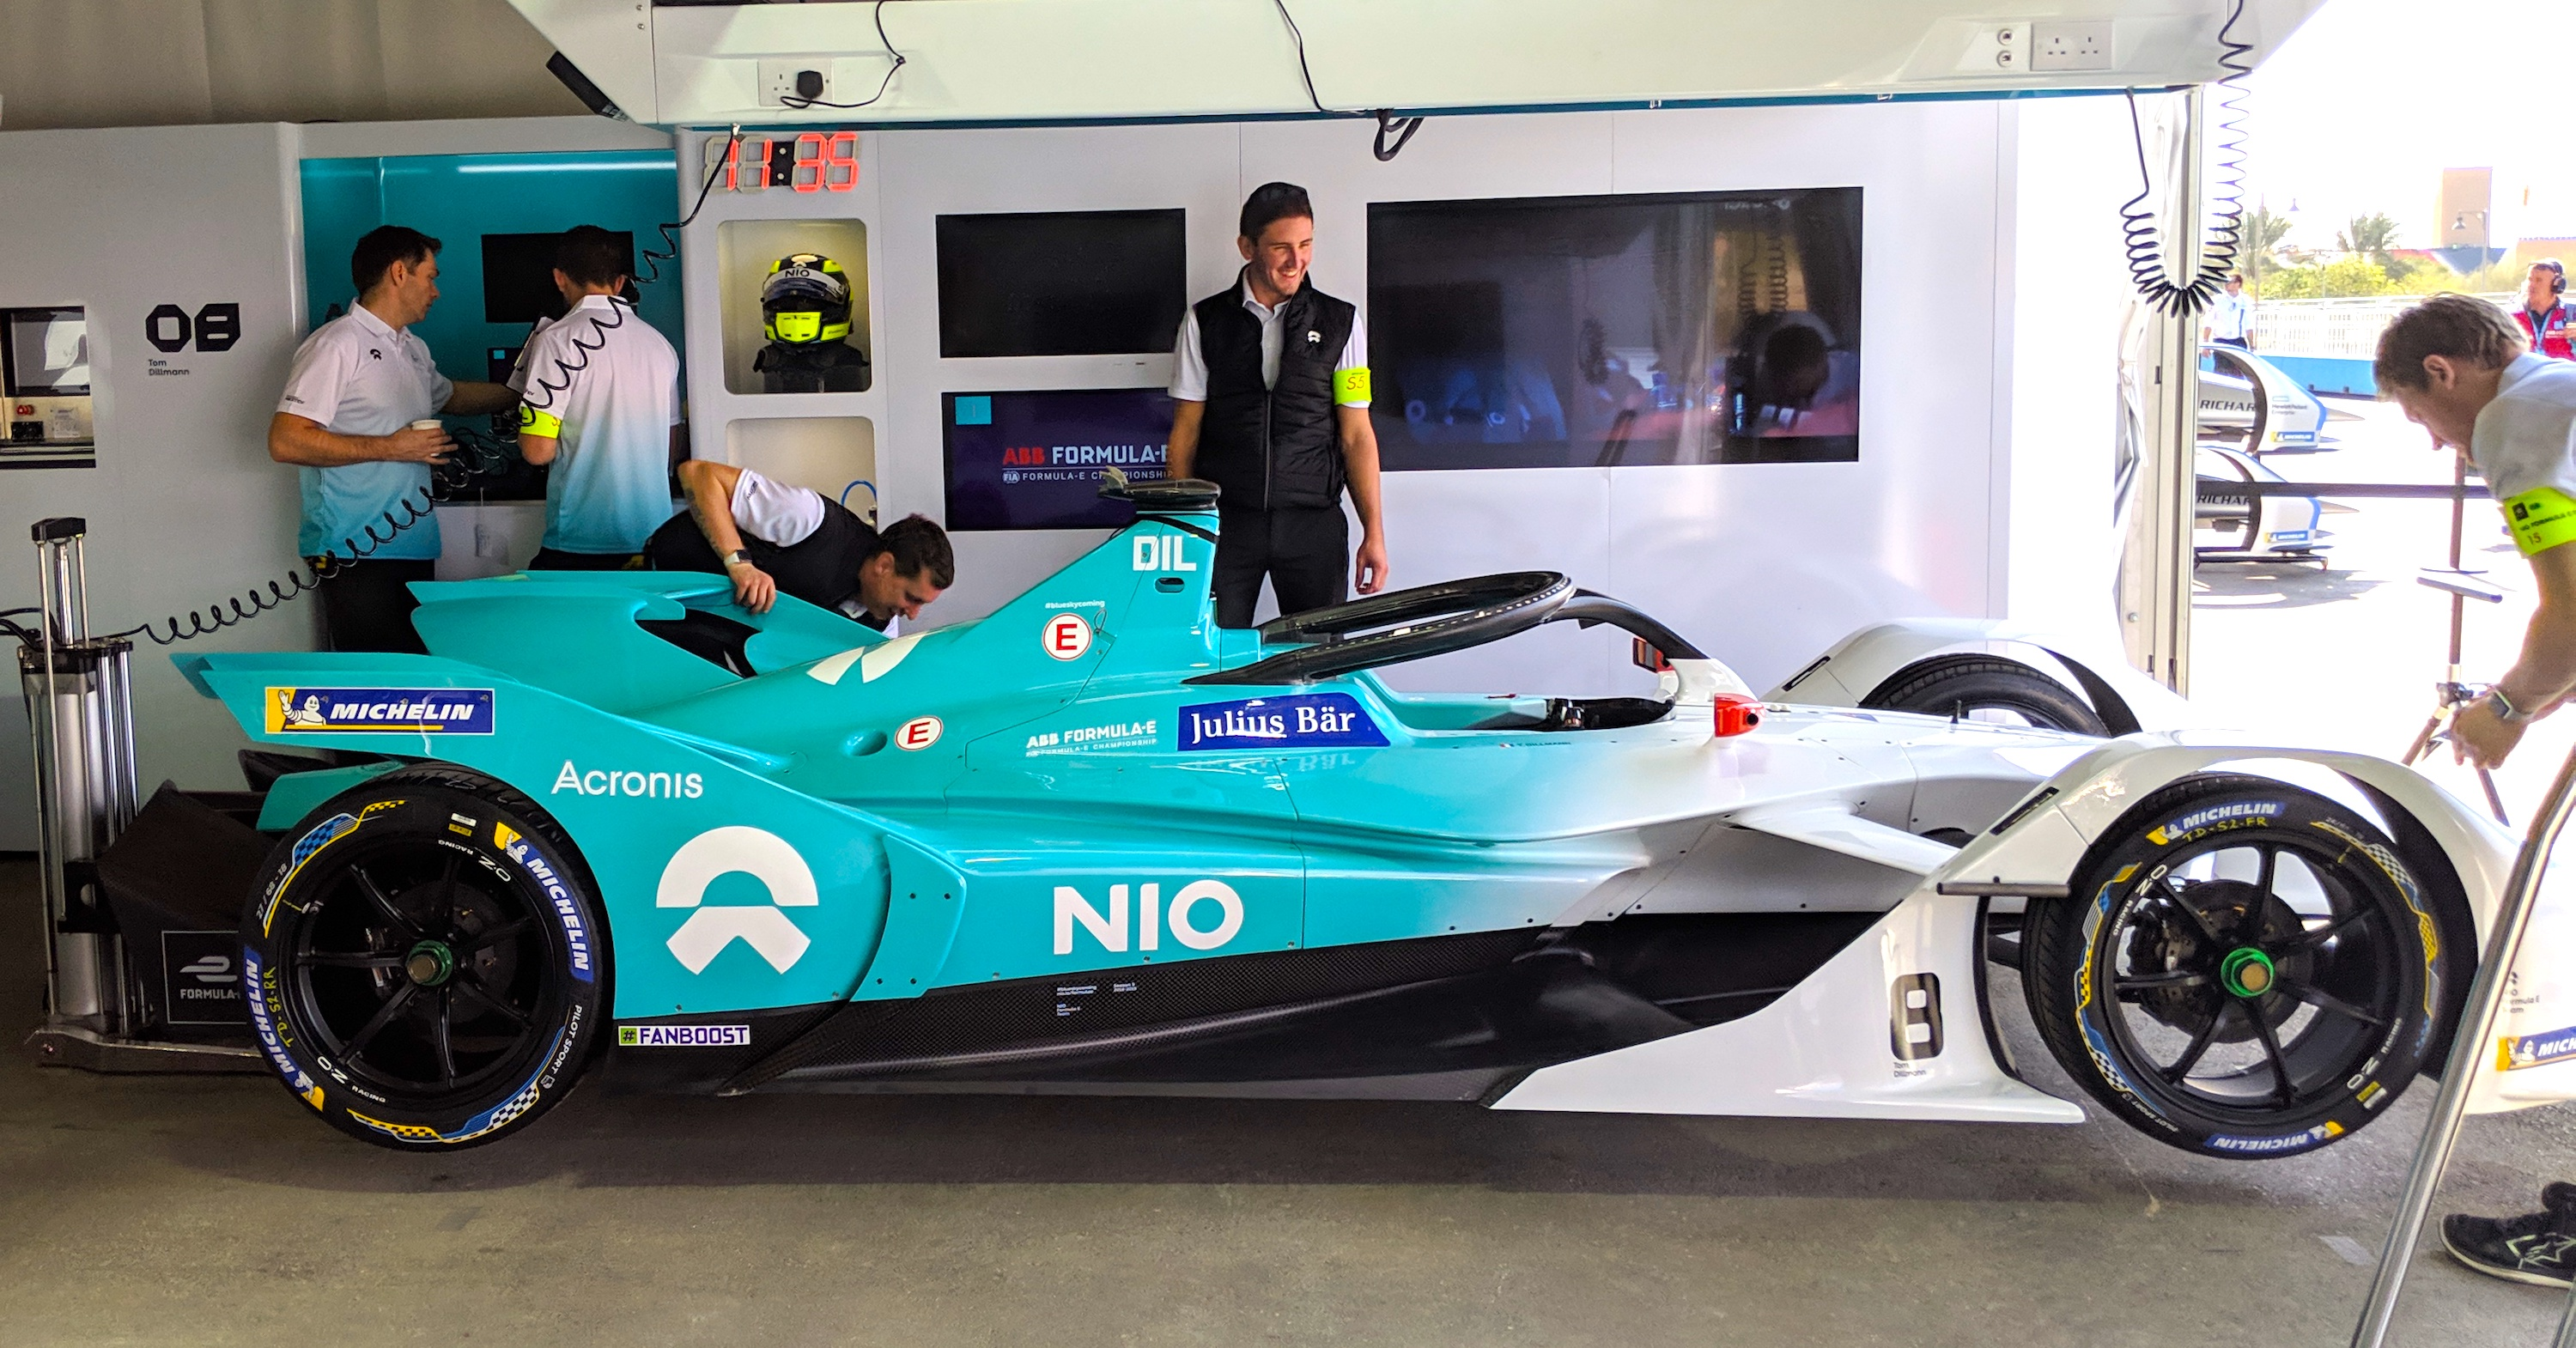 NIO Formula E Team Gen2 Car